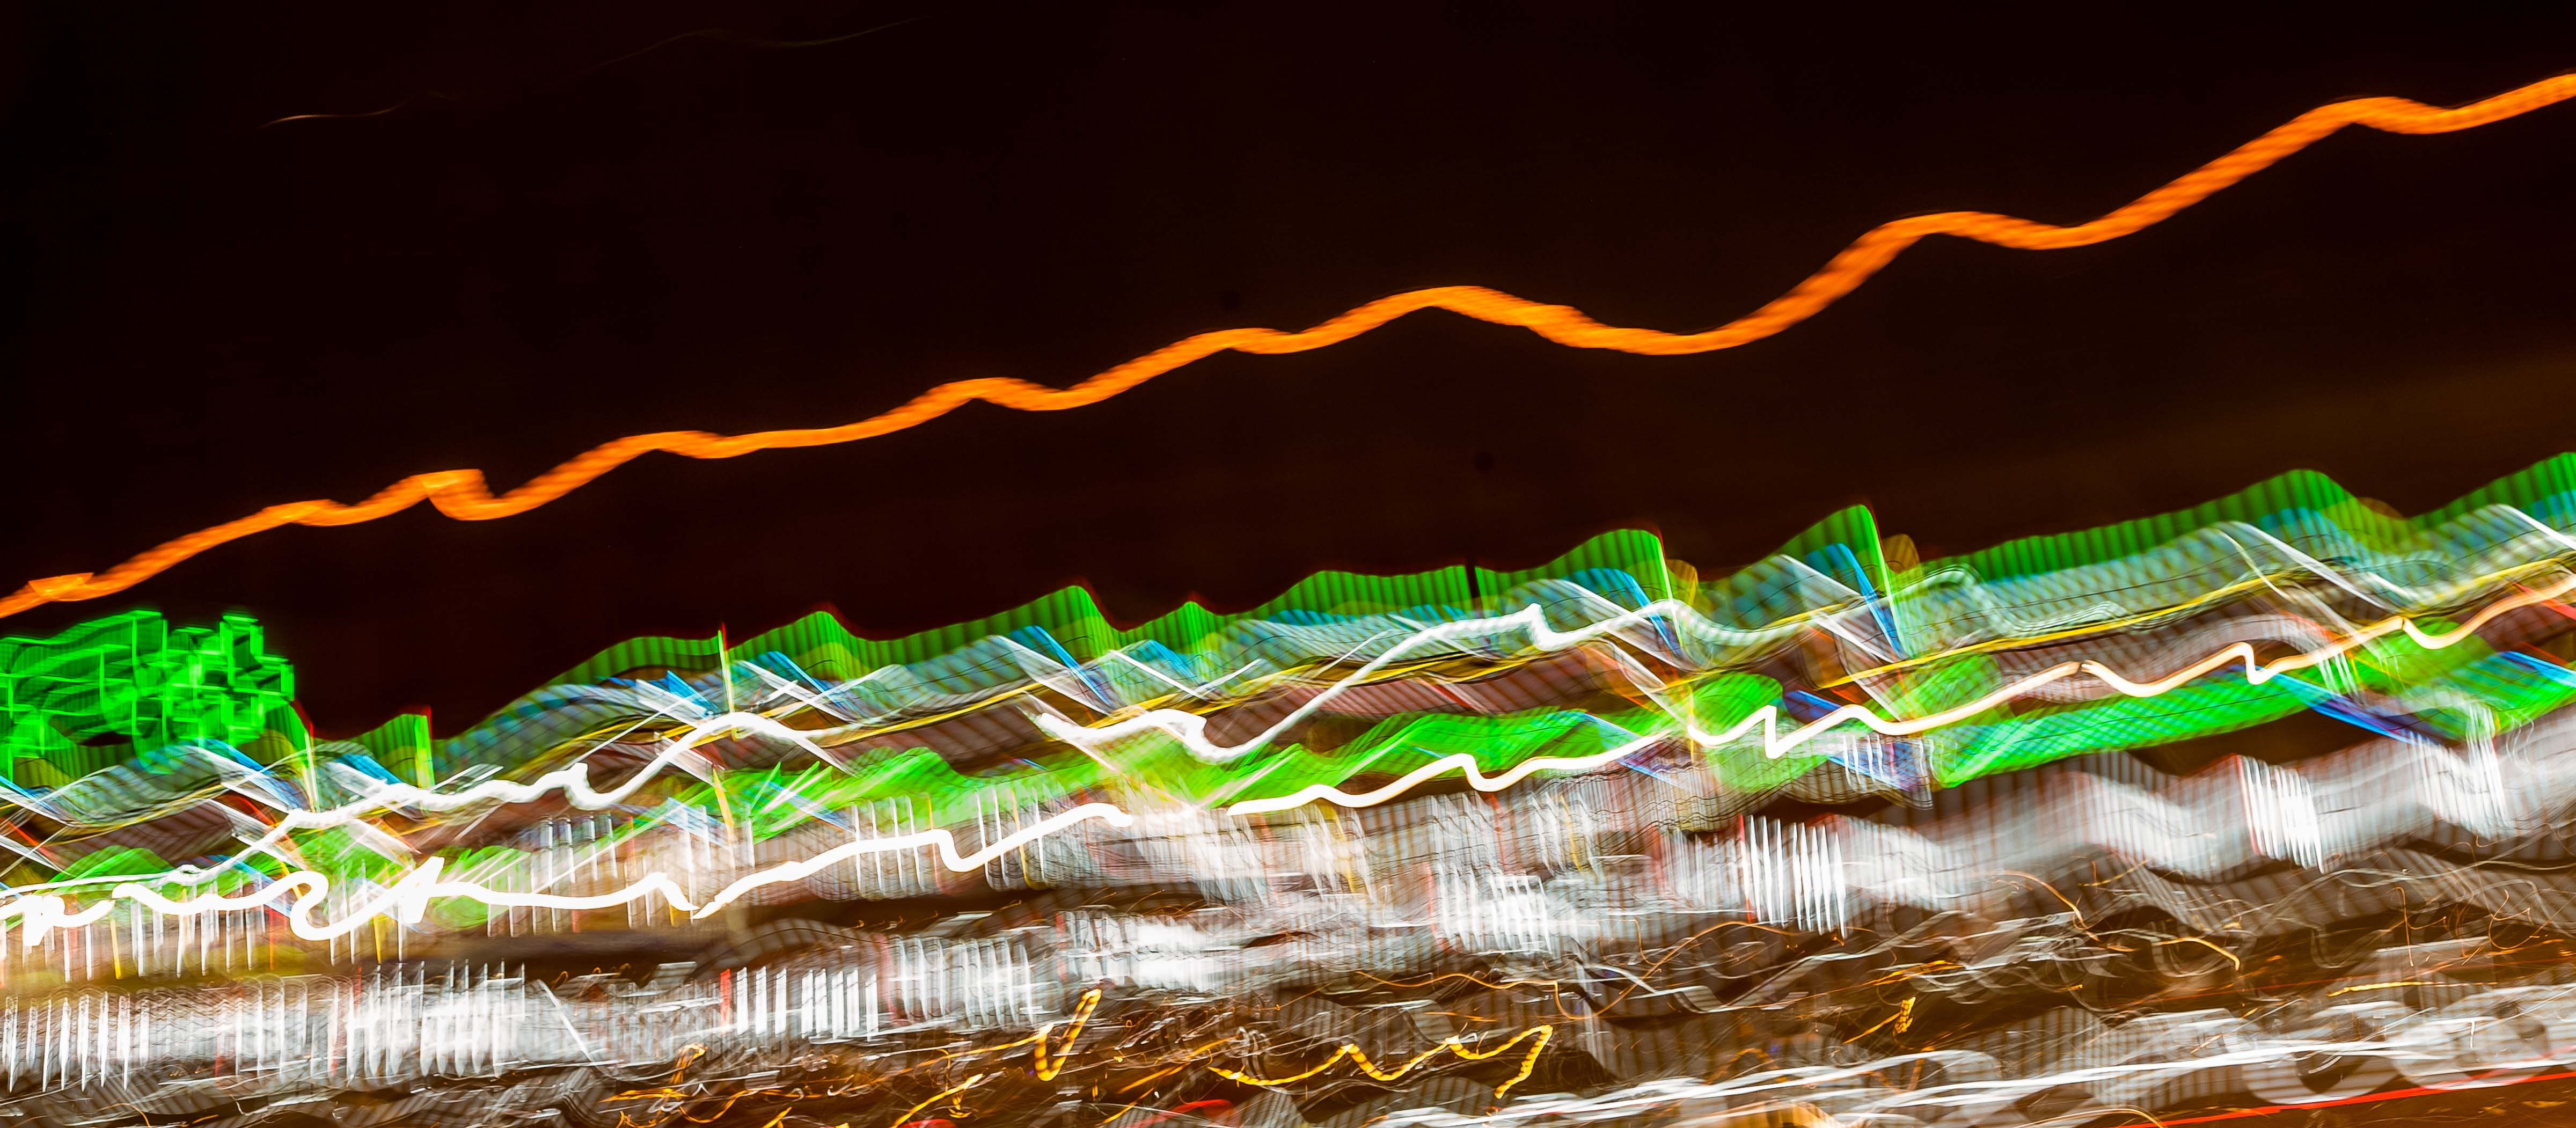 Thailand, Chiang Mai Prov, Light Painting, 2008, IMG 3951